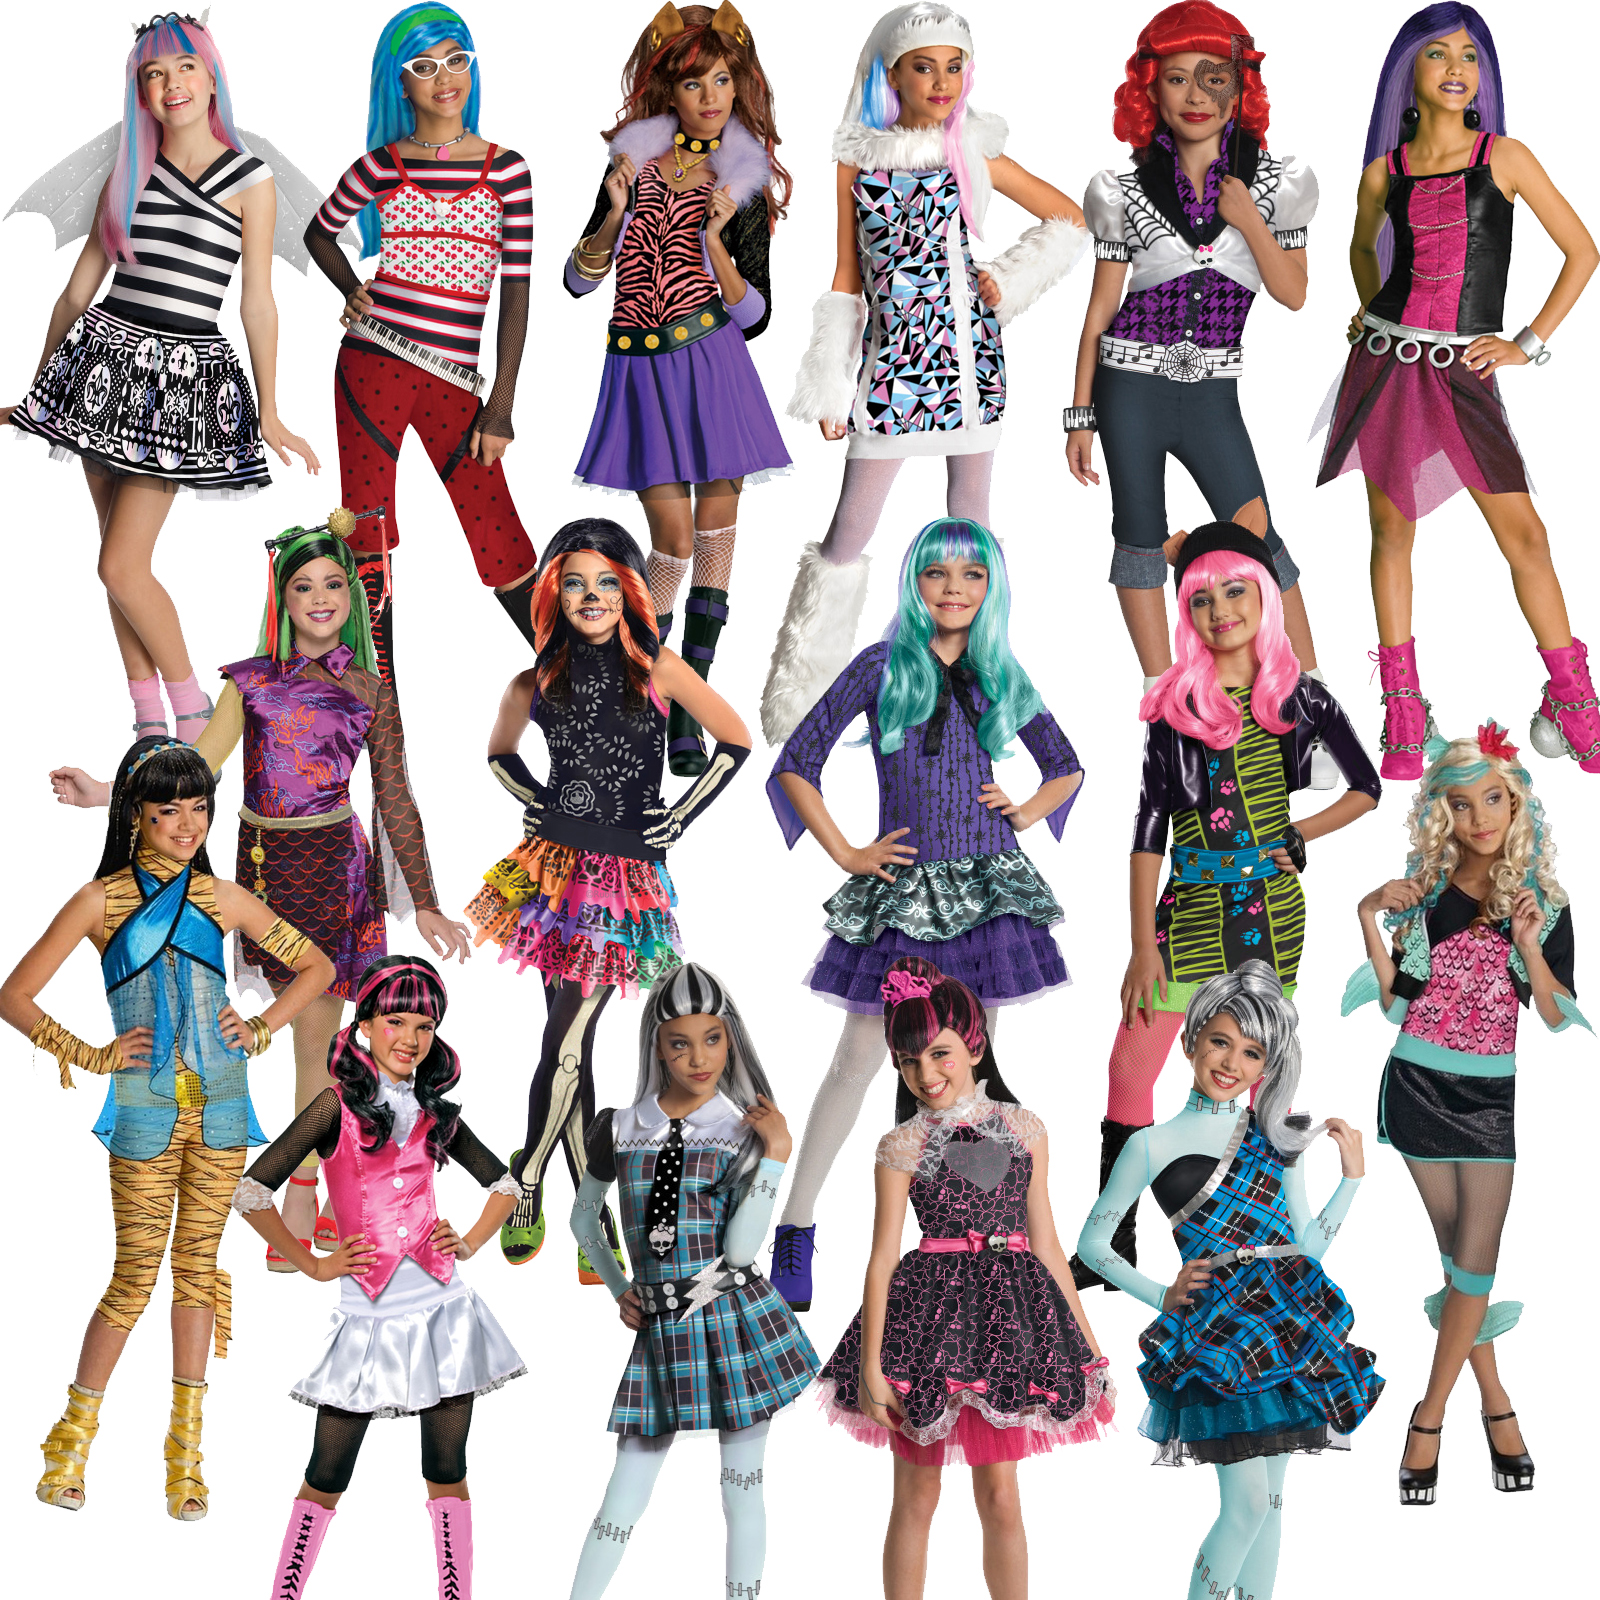 ... monster high costumes for kids ...  sc 1 st  Best Kids Costumes & Costumes For Kids Monster High - Best Kids Costumes